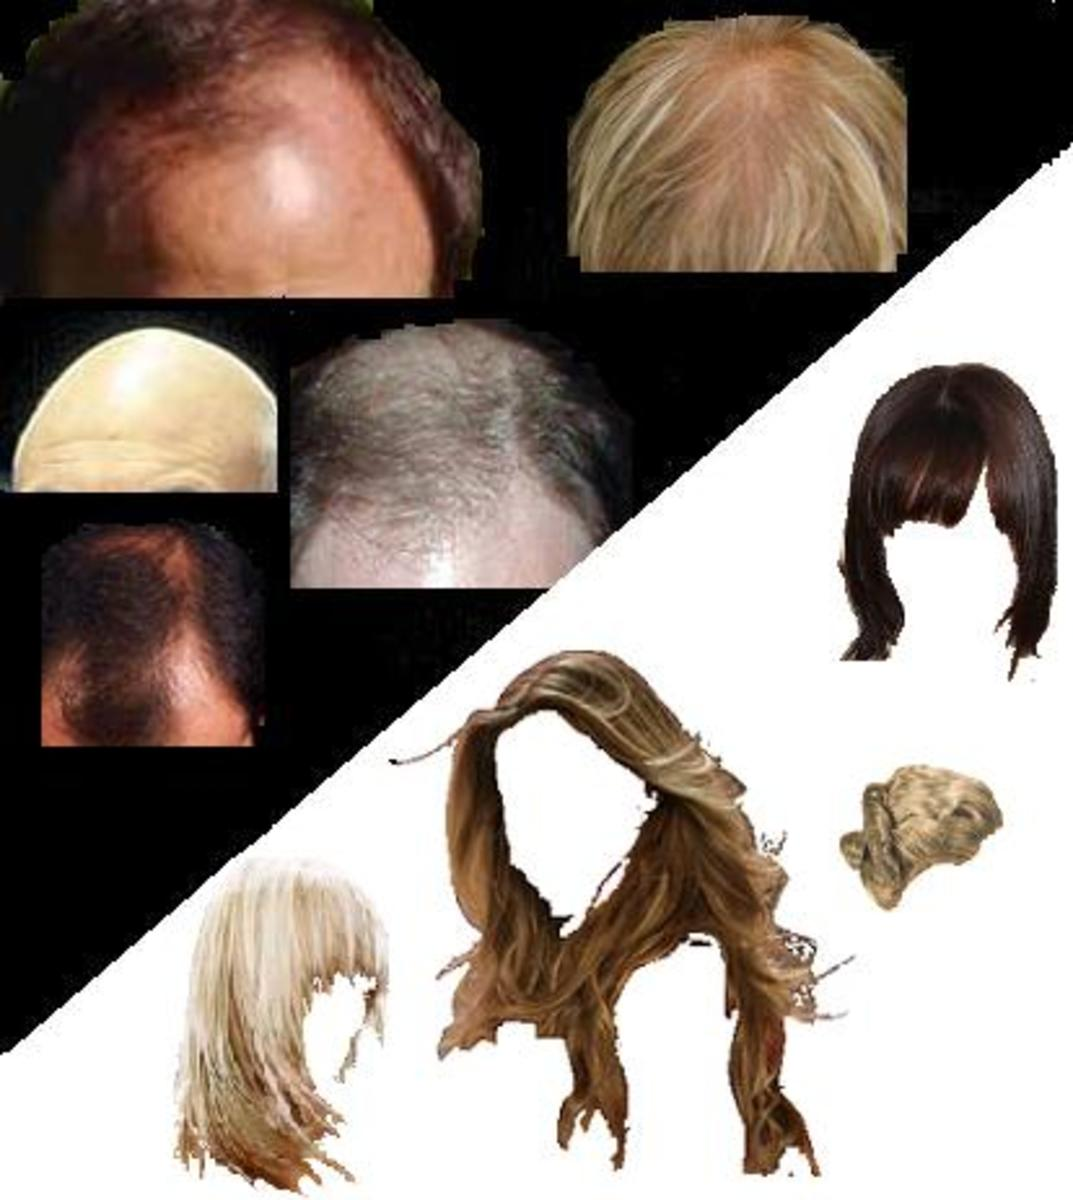 This is why it's called male pattern baldness and not chick pattern baldness.